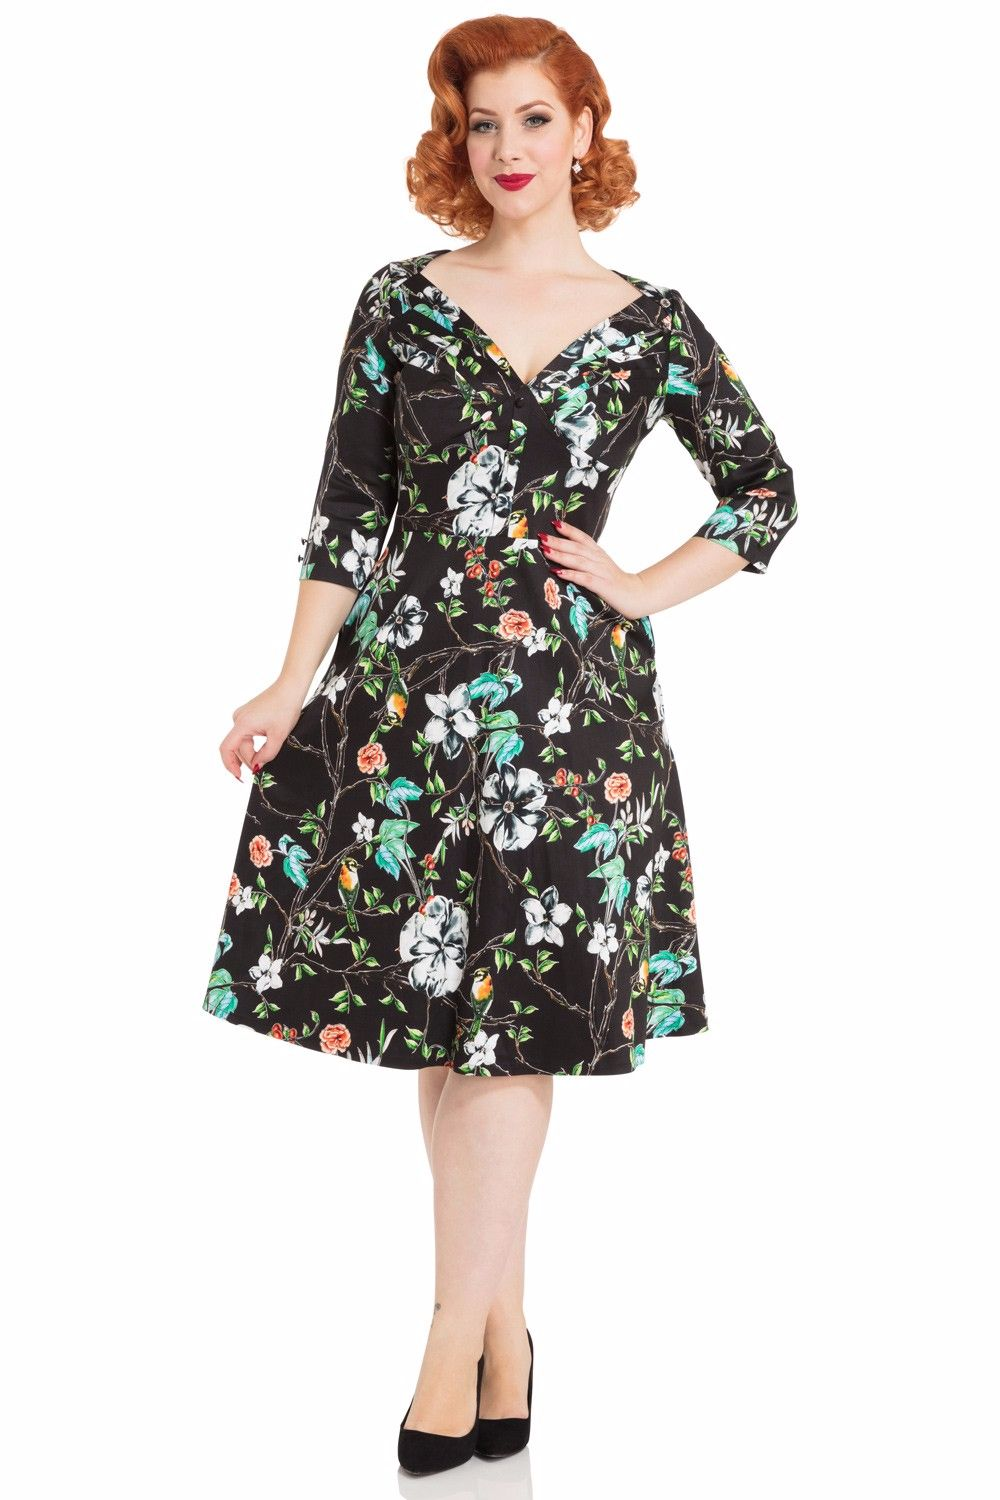 Voodoo Vixen Ellie Floral Swing Dress